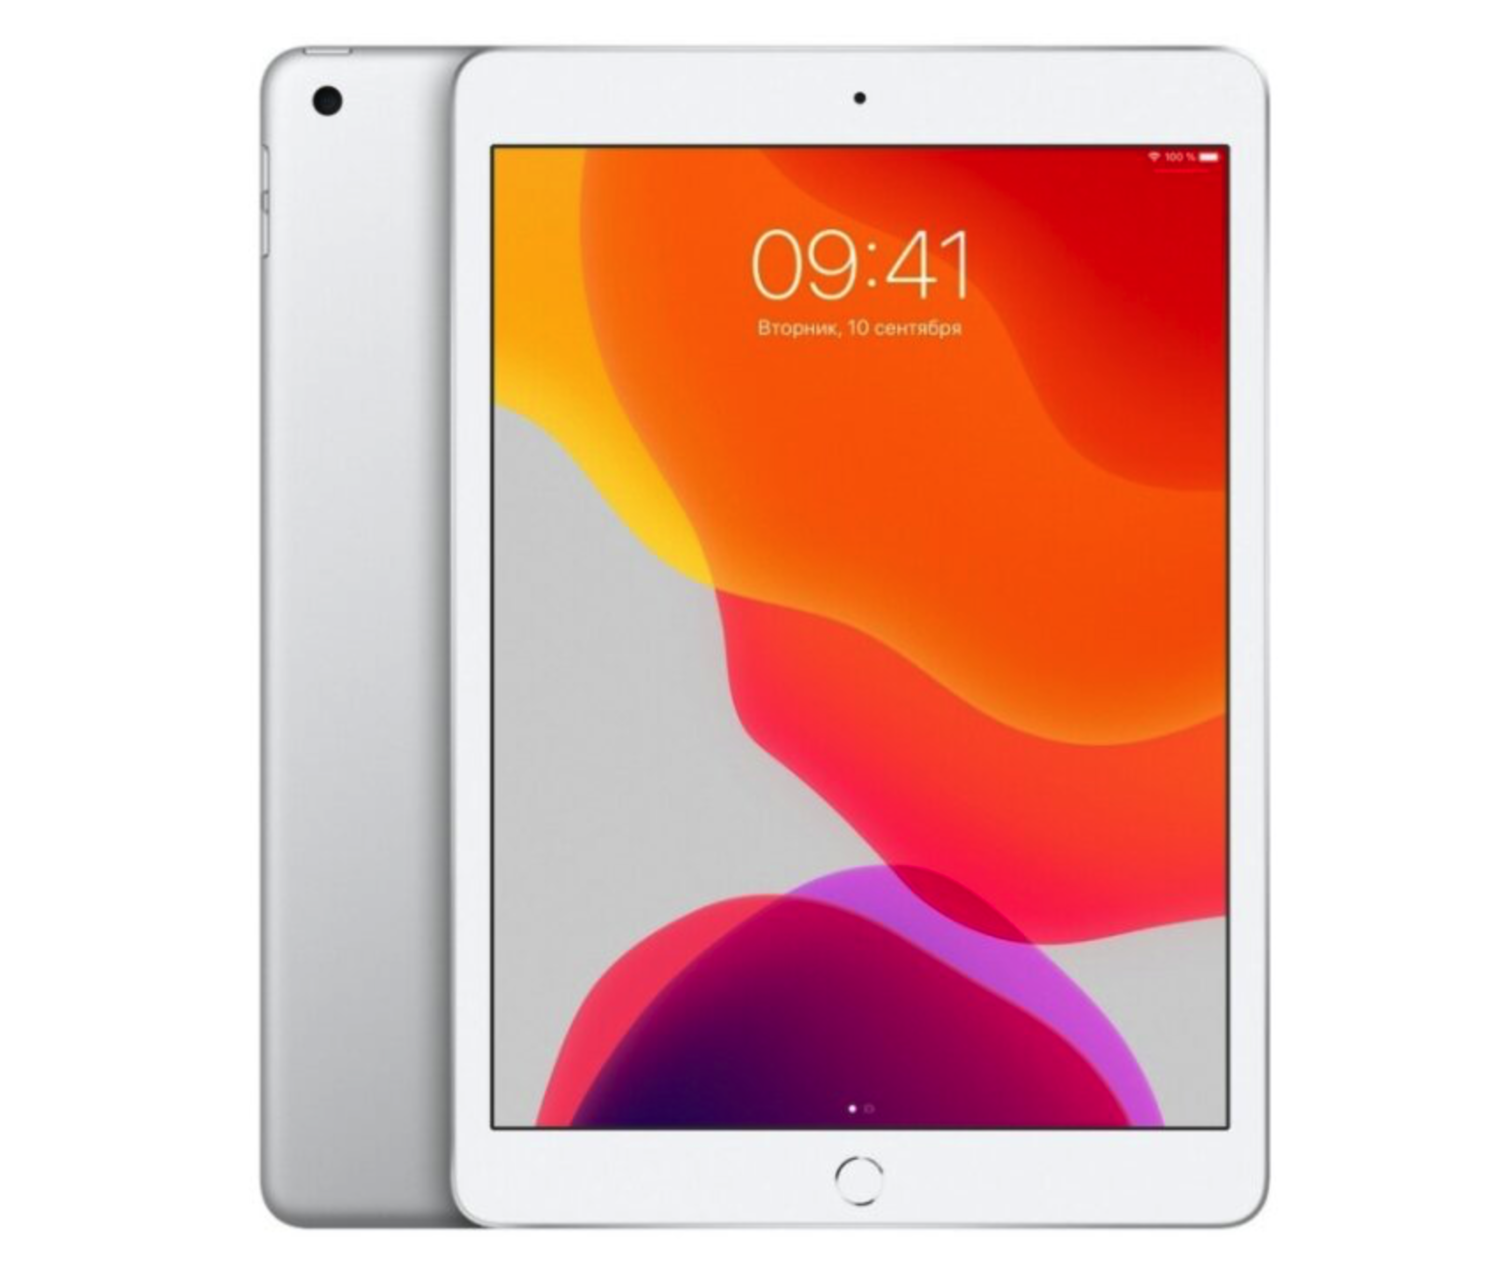 Планшет Apple iPad (2019) 32Gb Wi-Fi + Cellular Silver (серебристый) MW6C2RU/A РОСТЕСТ